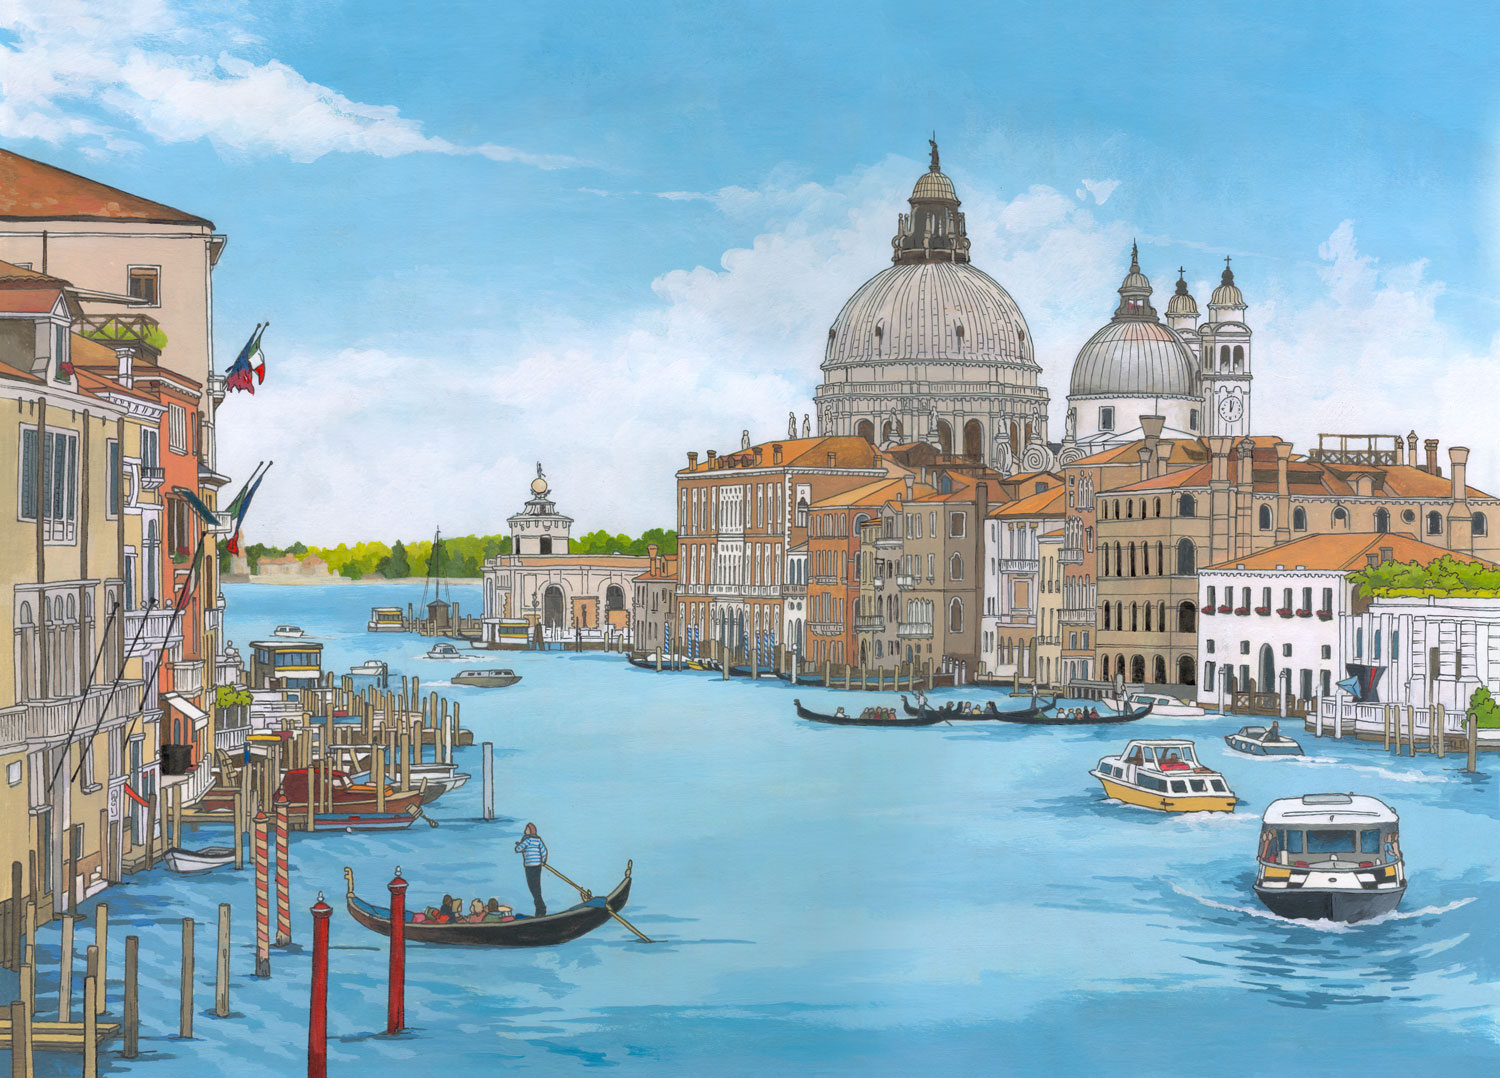 Grand Canal Venice Illustration by Jonathan Chapman